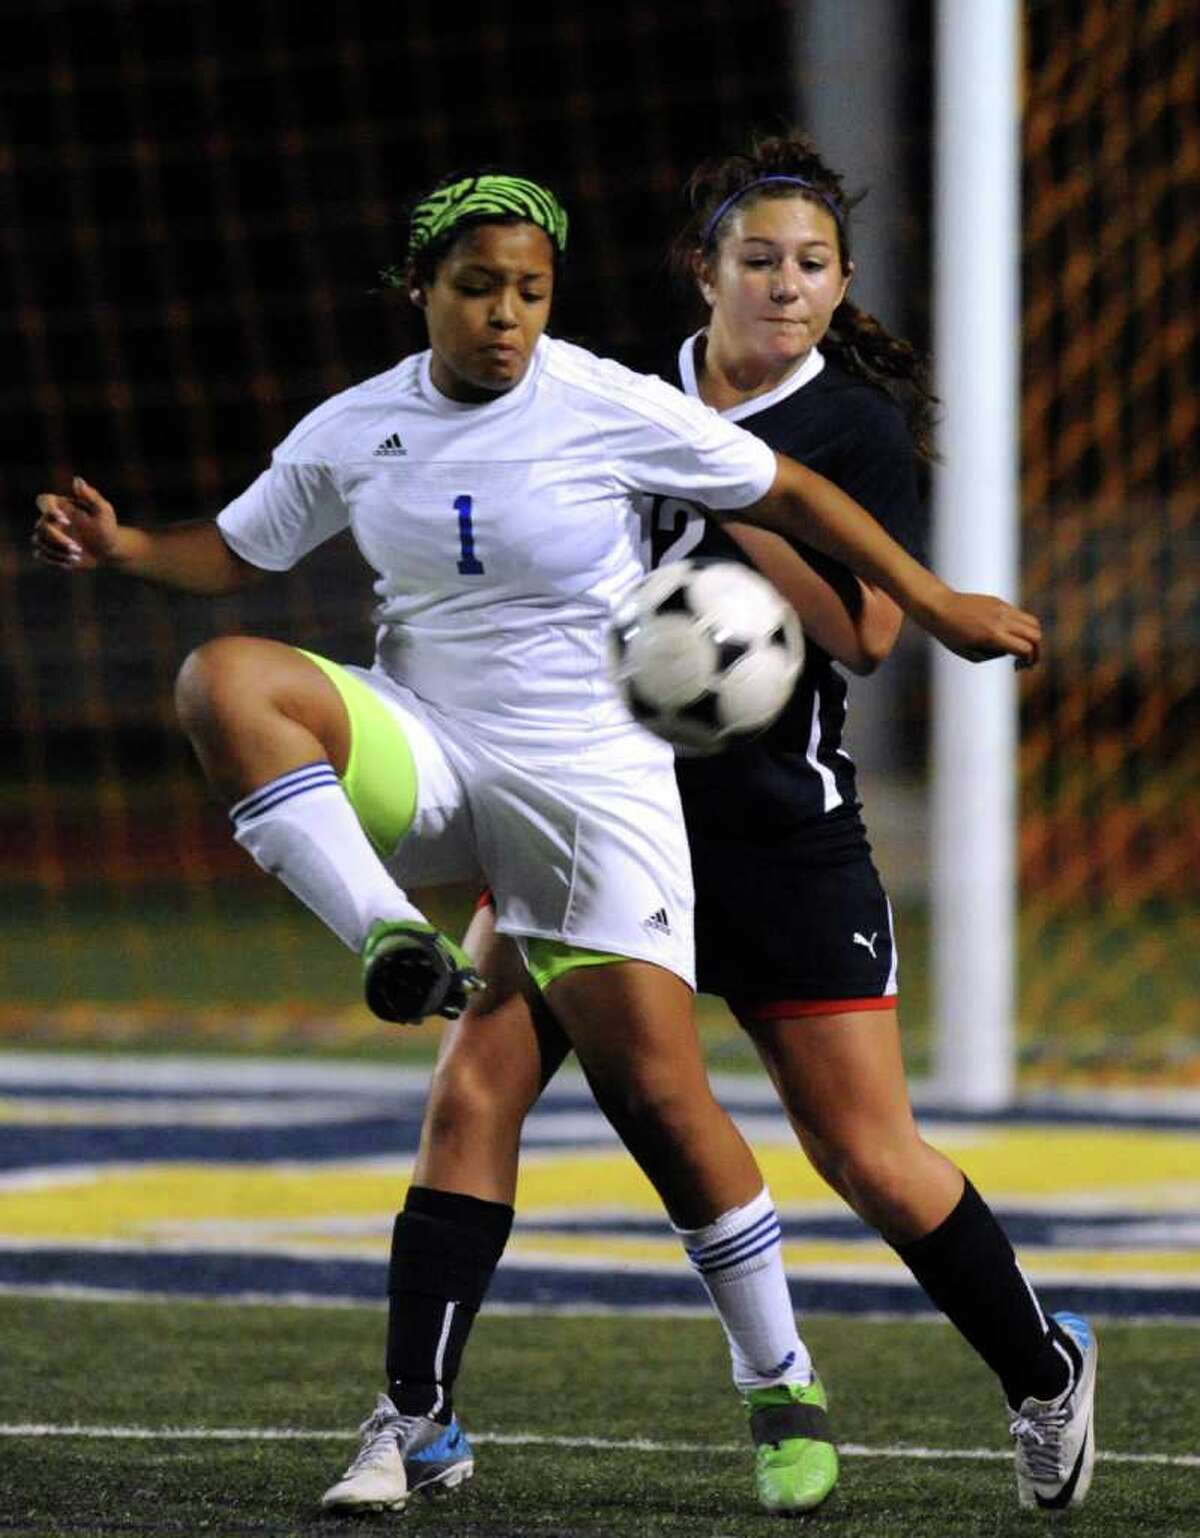 Mickey Garcia (1) of Clemens kicks the ball as Mikaylah Collins of Smithson Valley defends during girls soccer action at Clemens High School on Friday, March 23, 2012. Billy Calzada / San Antonio Express-News